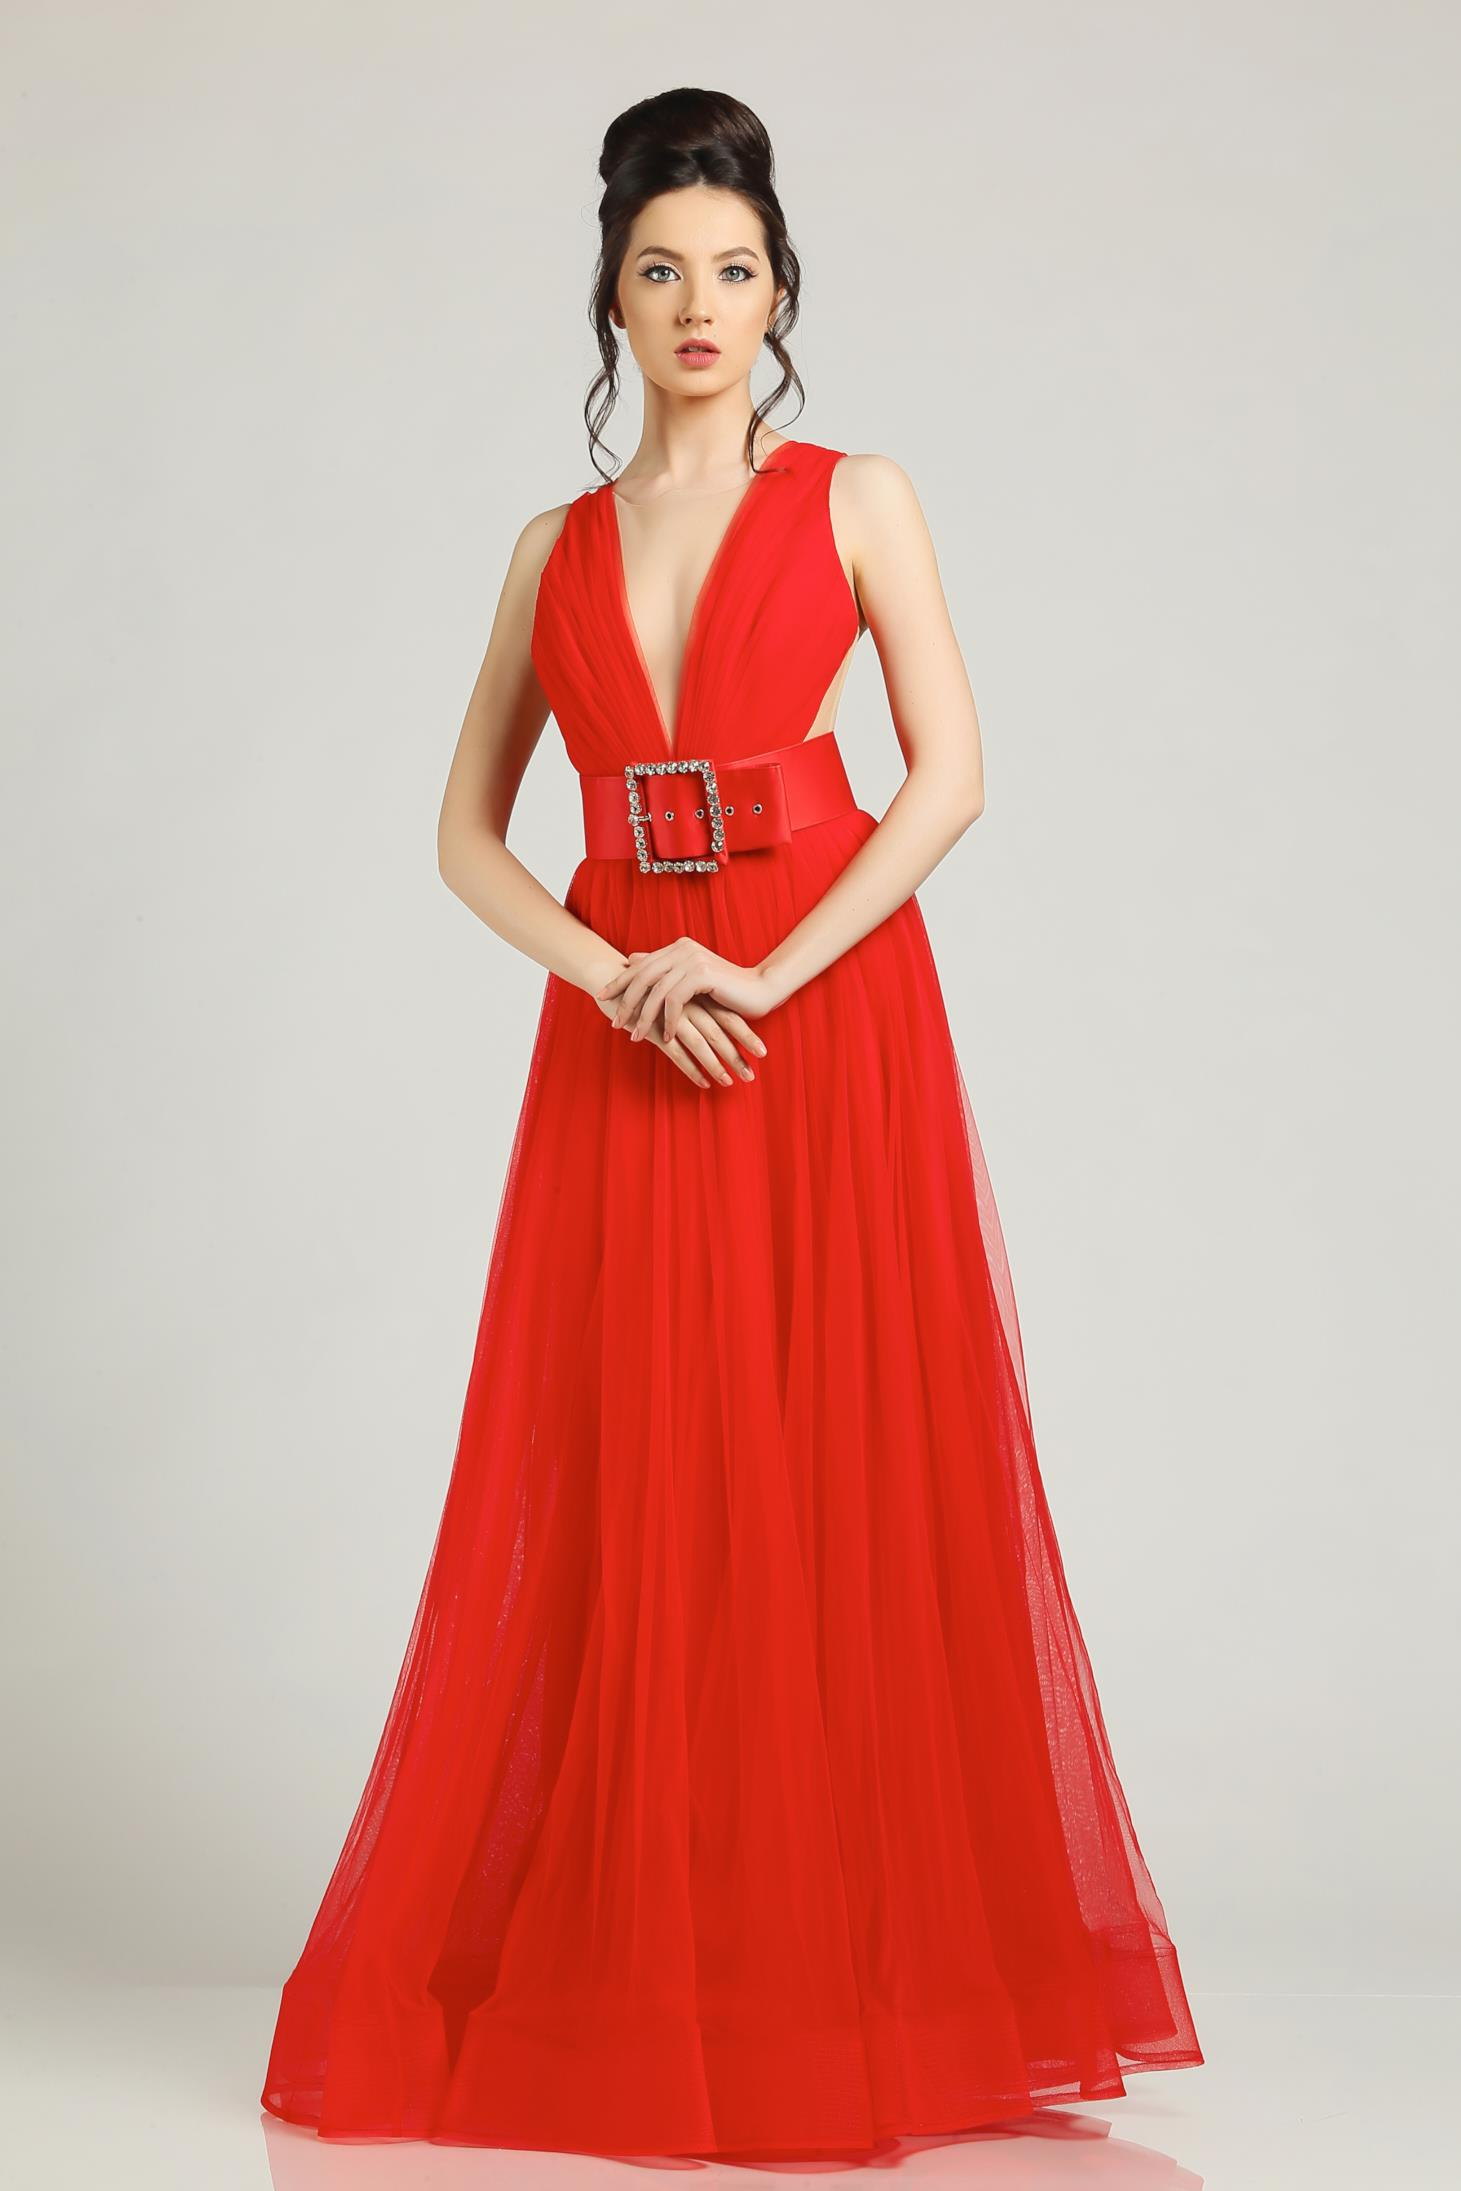 Red evening dresses Ana Radu dress accessorized with belt